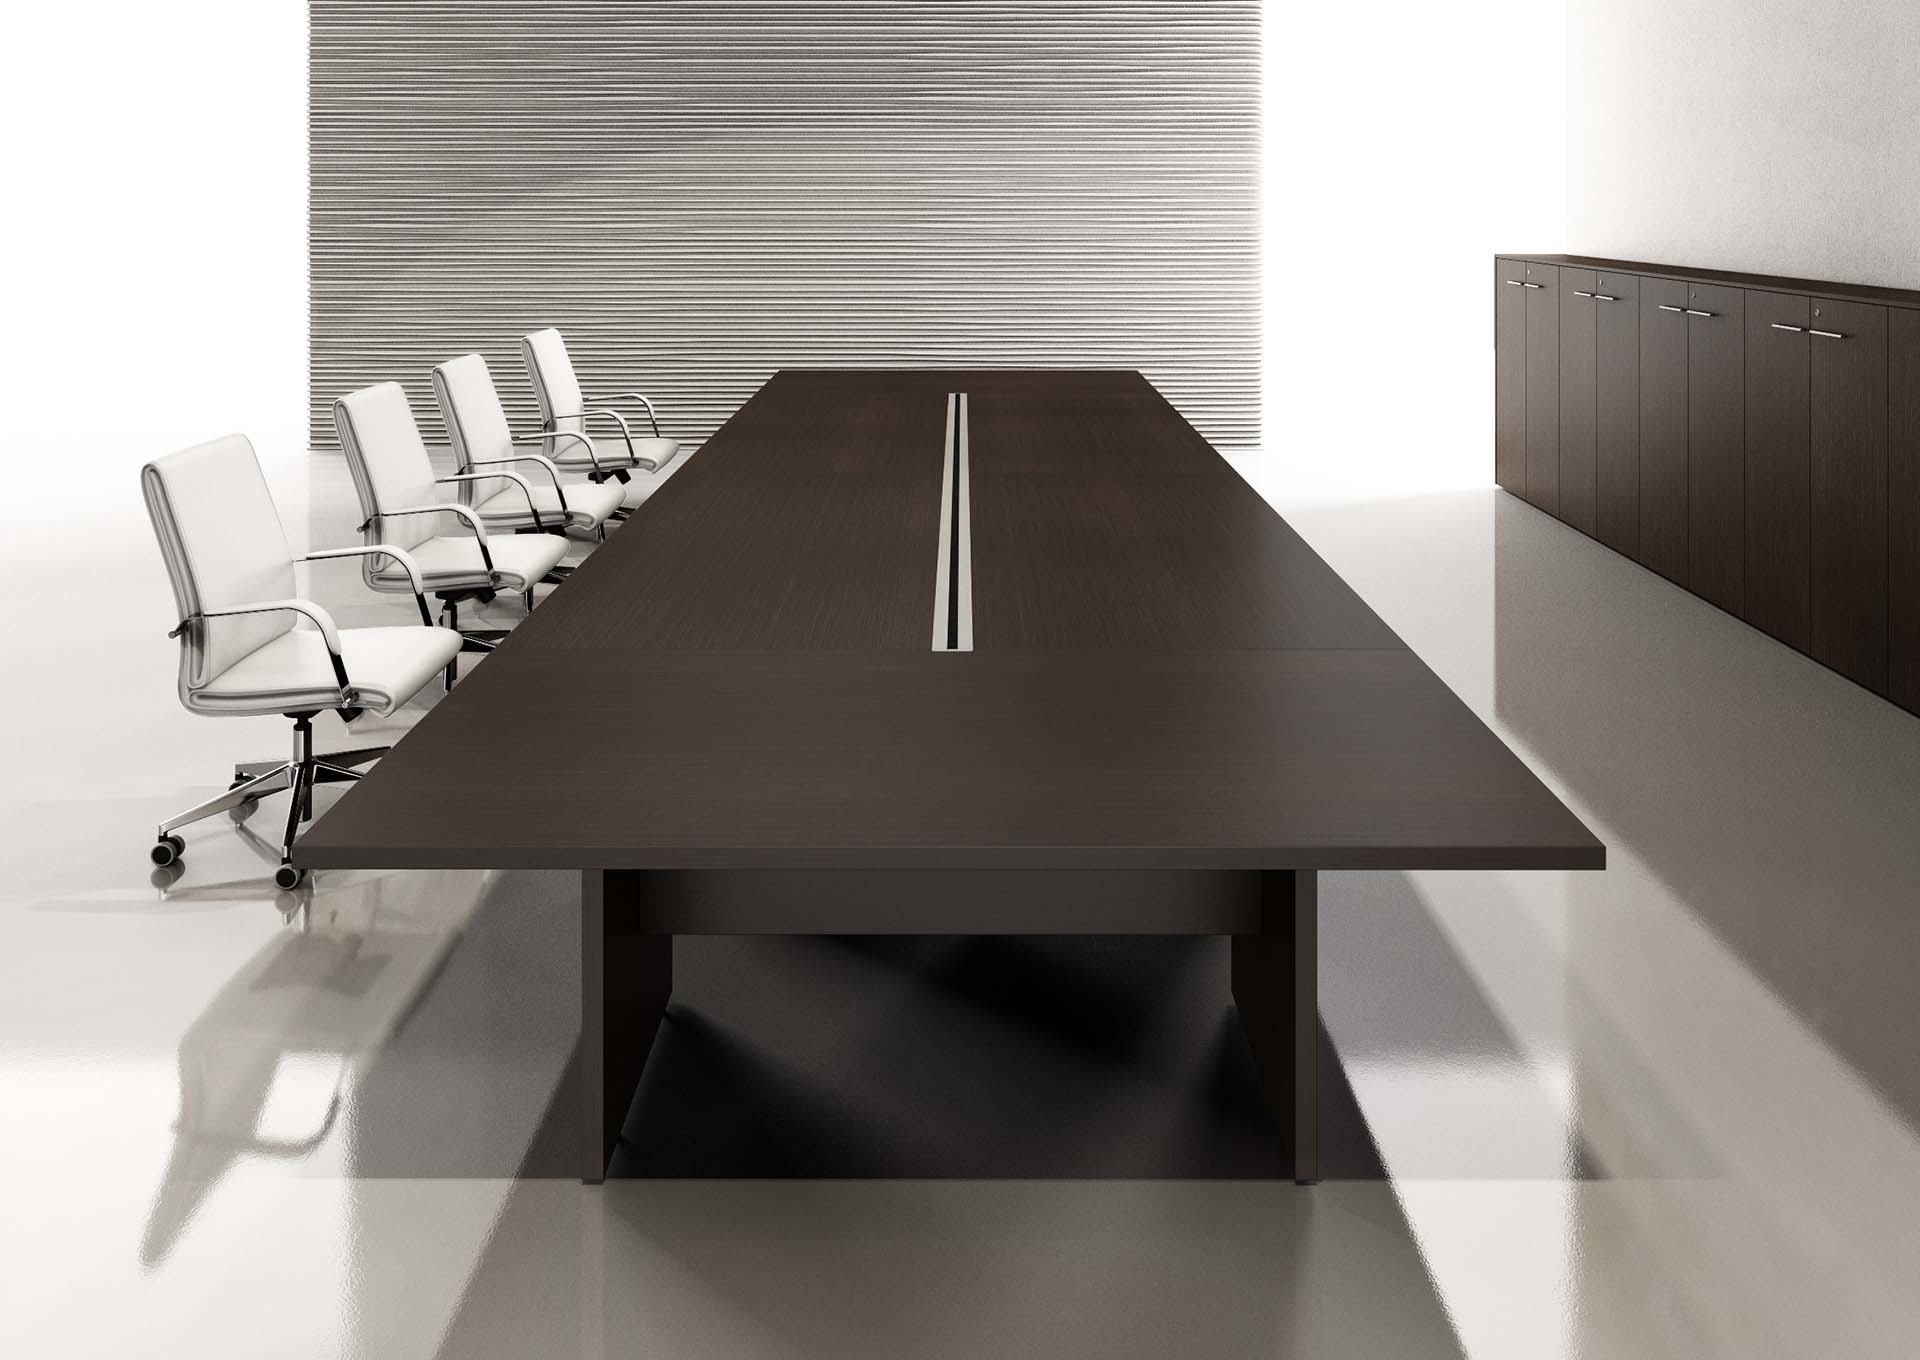 meeting-table-ducted-xeno-manager-01.jpg